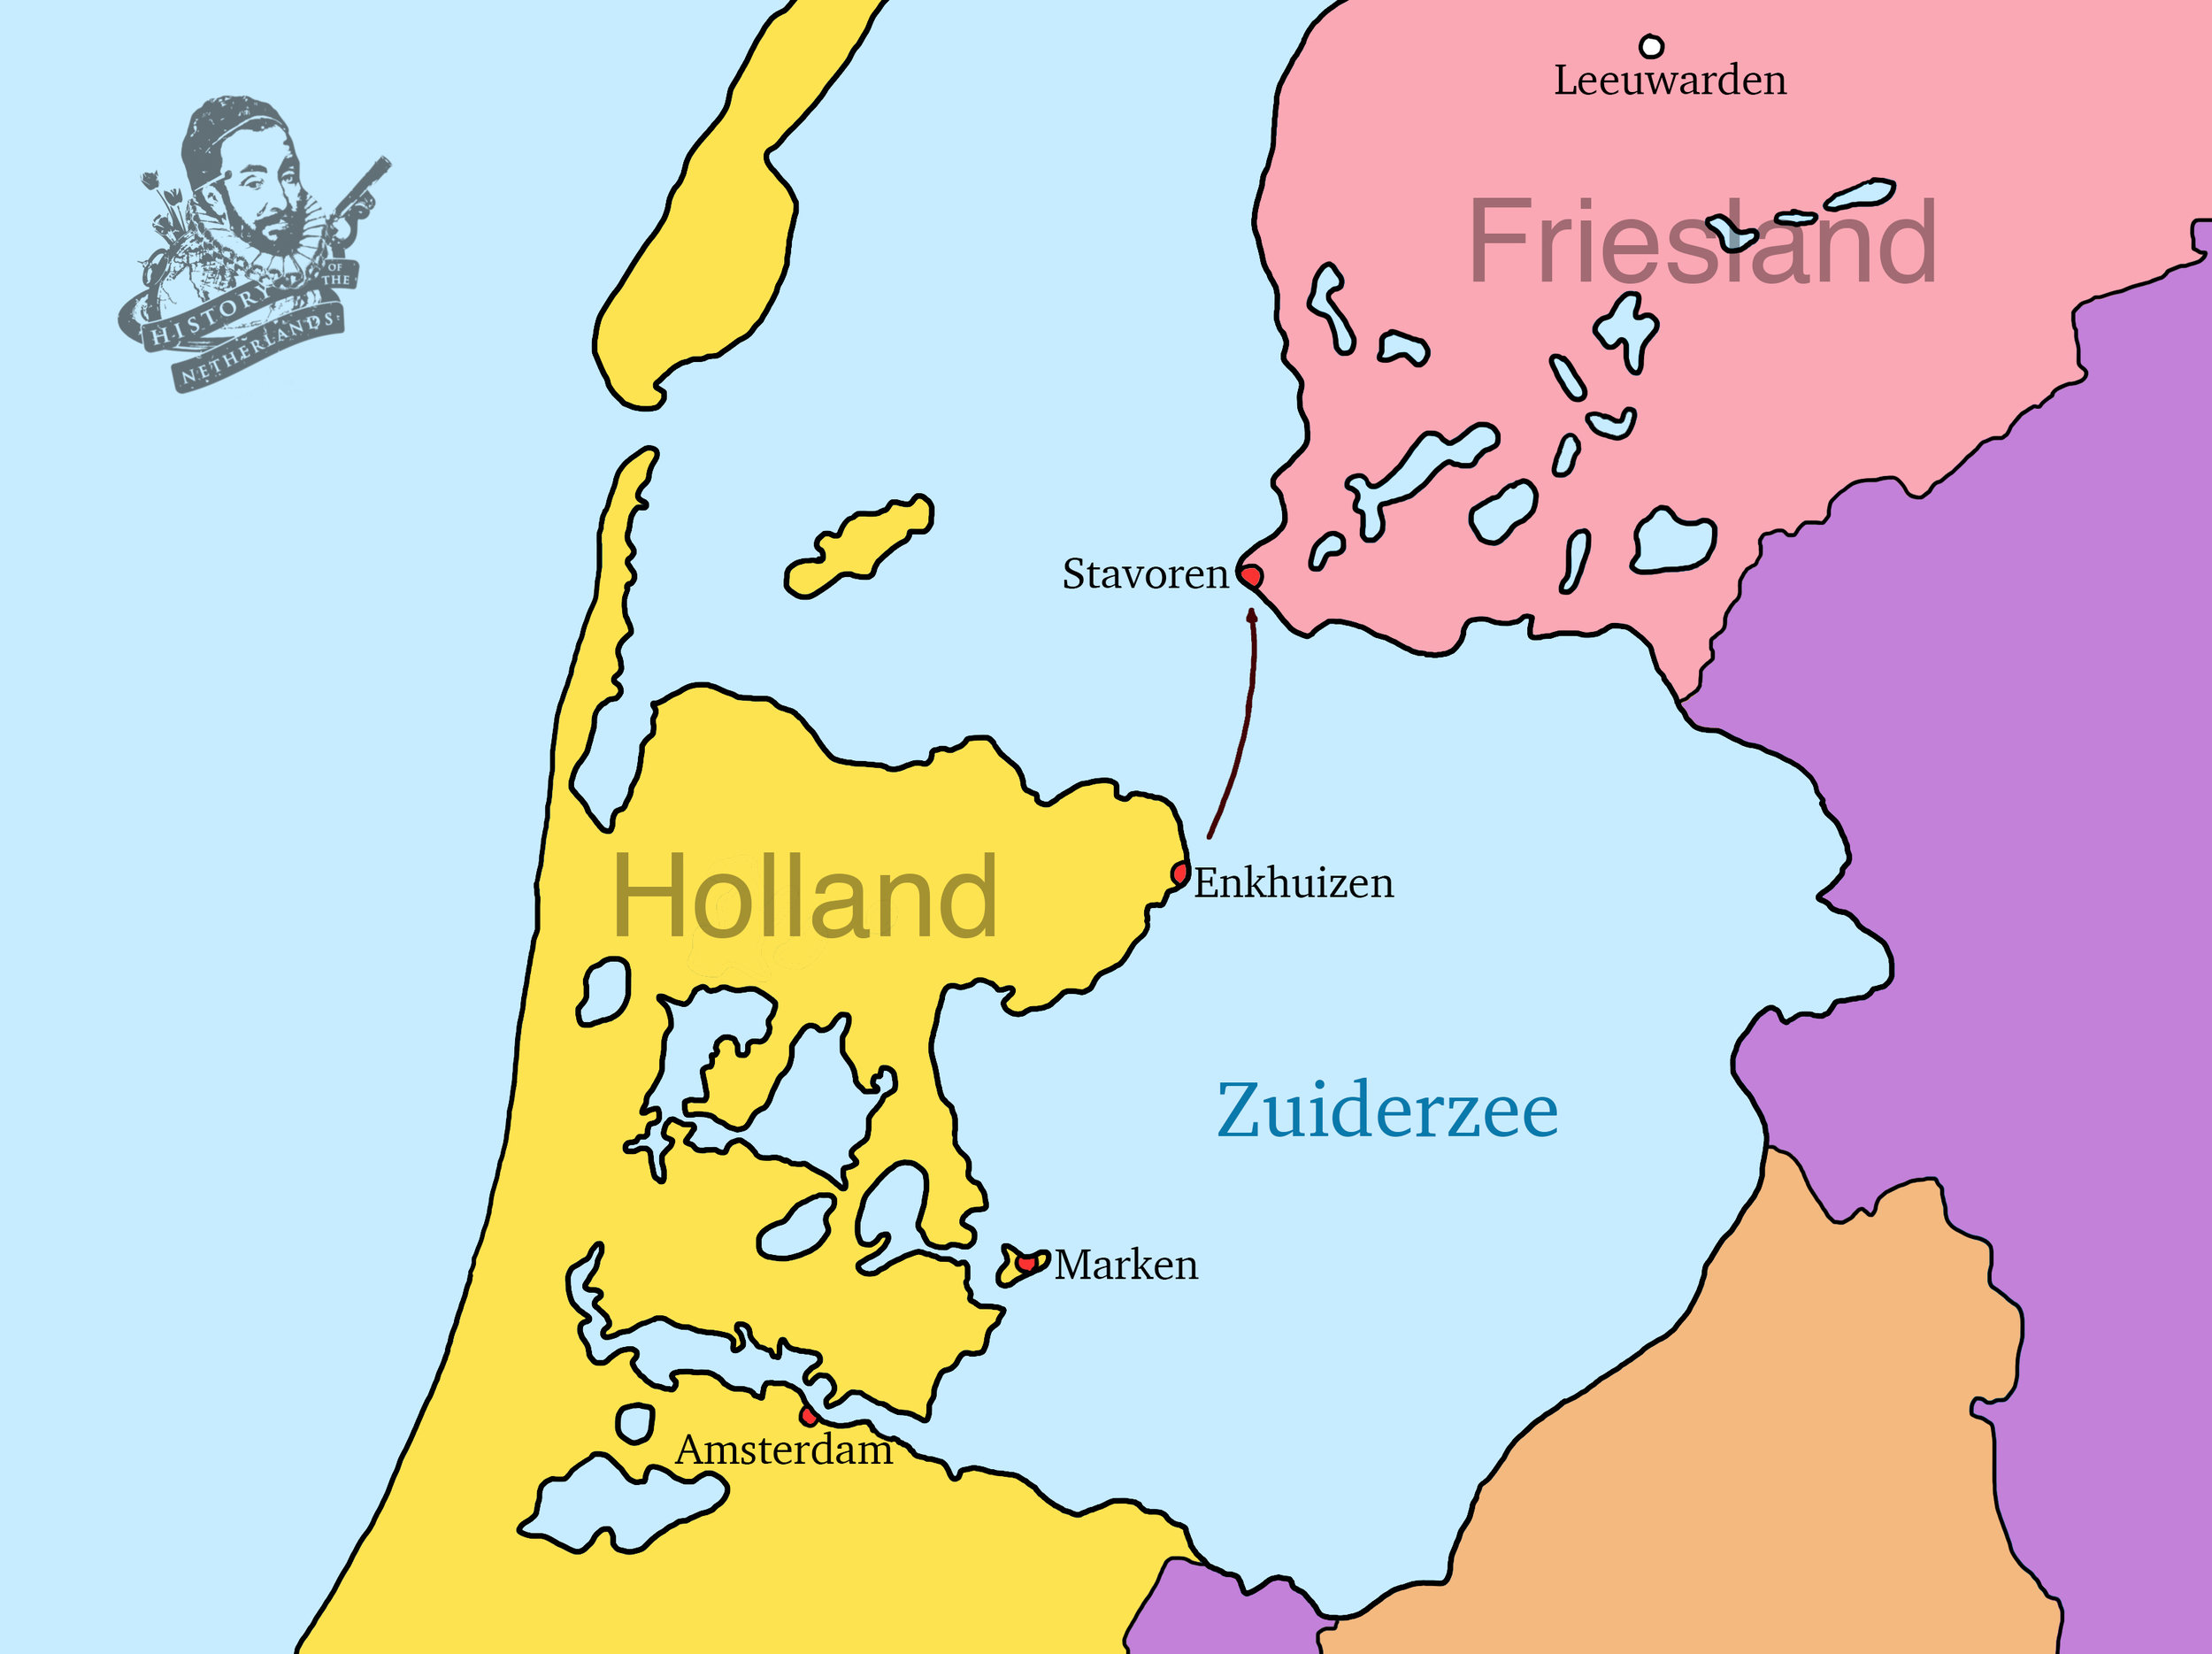 The invasion force sailed from Enkhuizen to Stavoren on 26 September, 1345, and limped back to Amsterdam a few days later, heavily defeated. Map by David Cenzer.